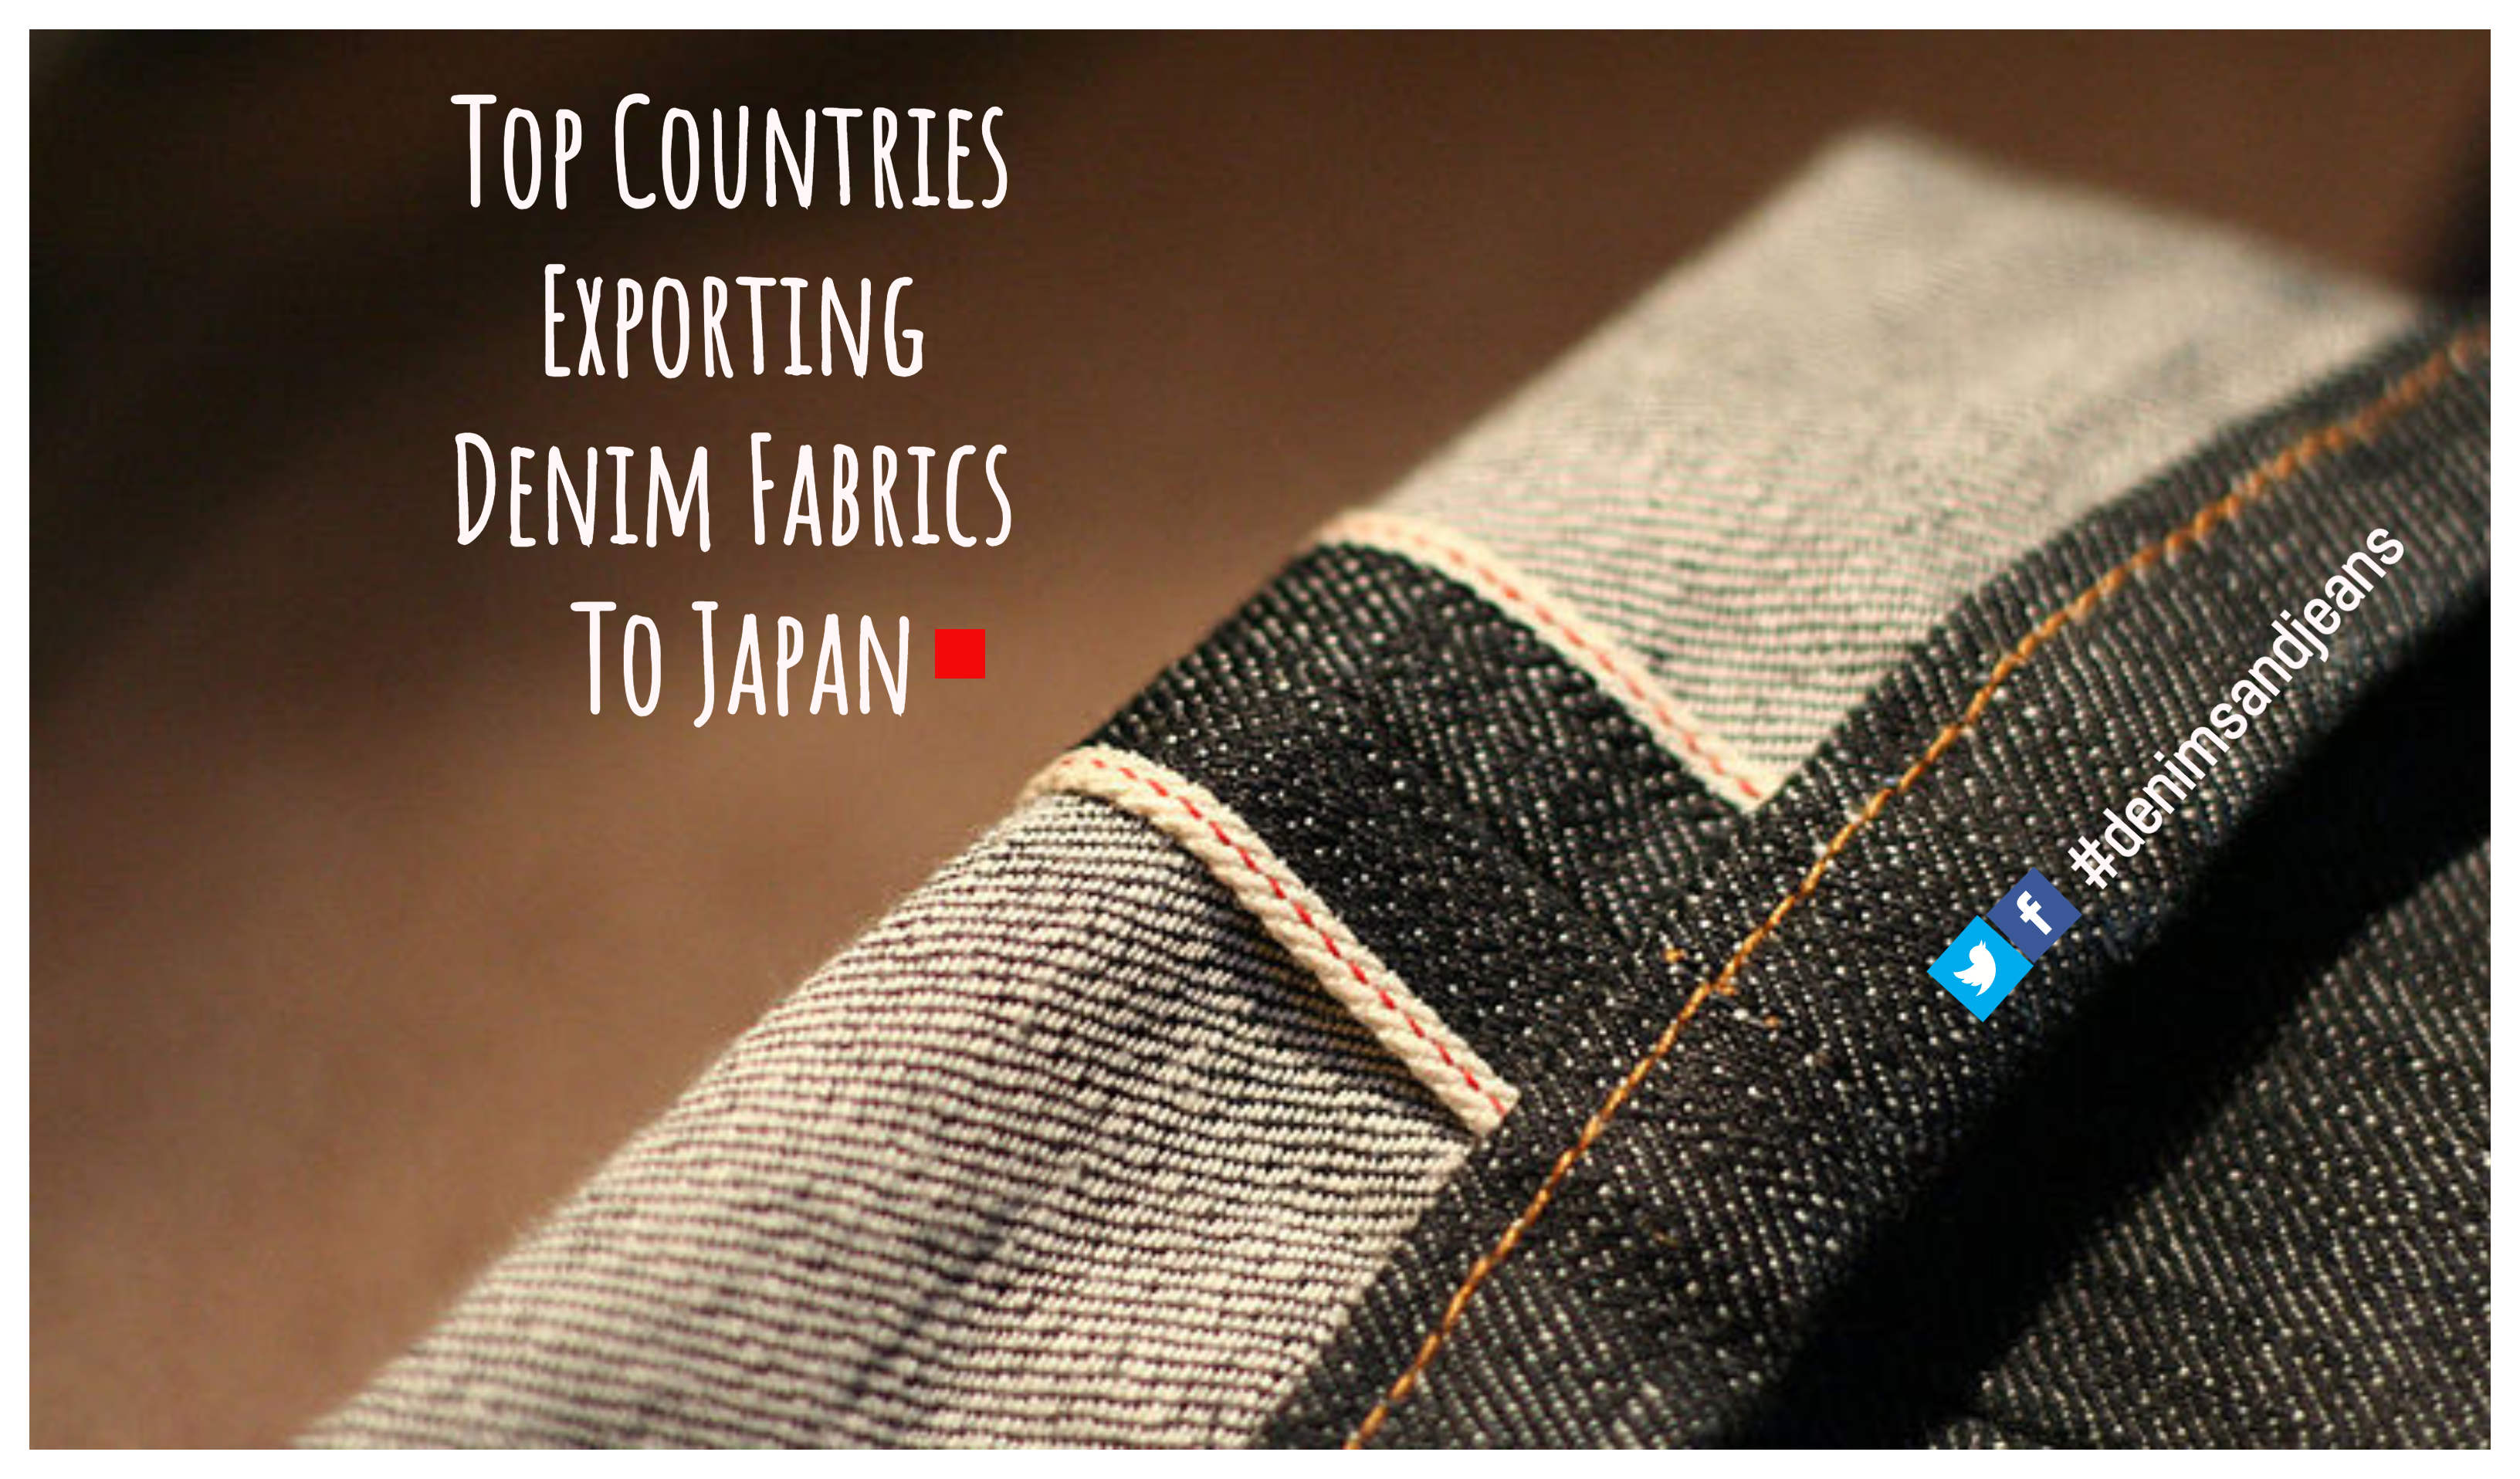 Top Countries Exporting Denim Fabrics To Japan